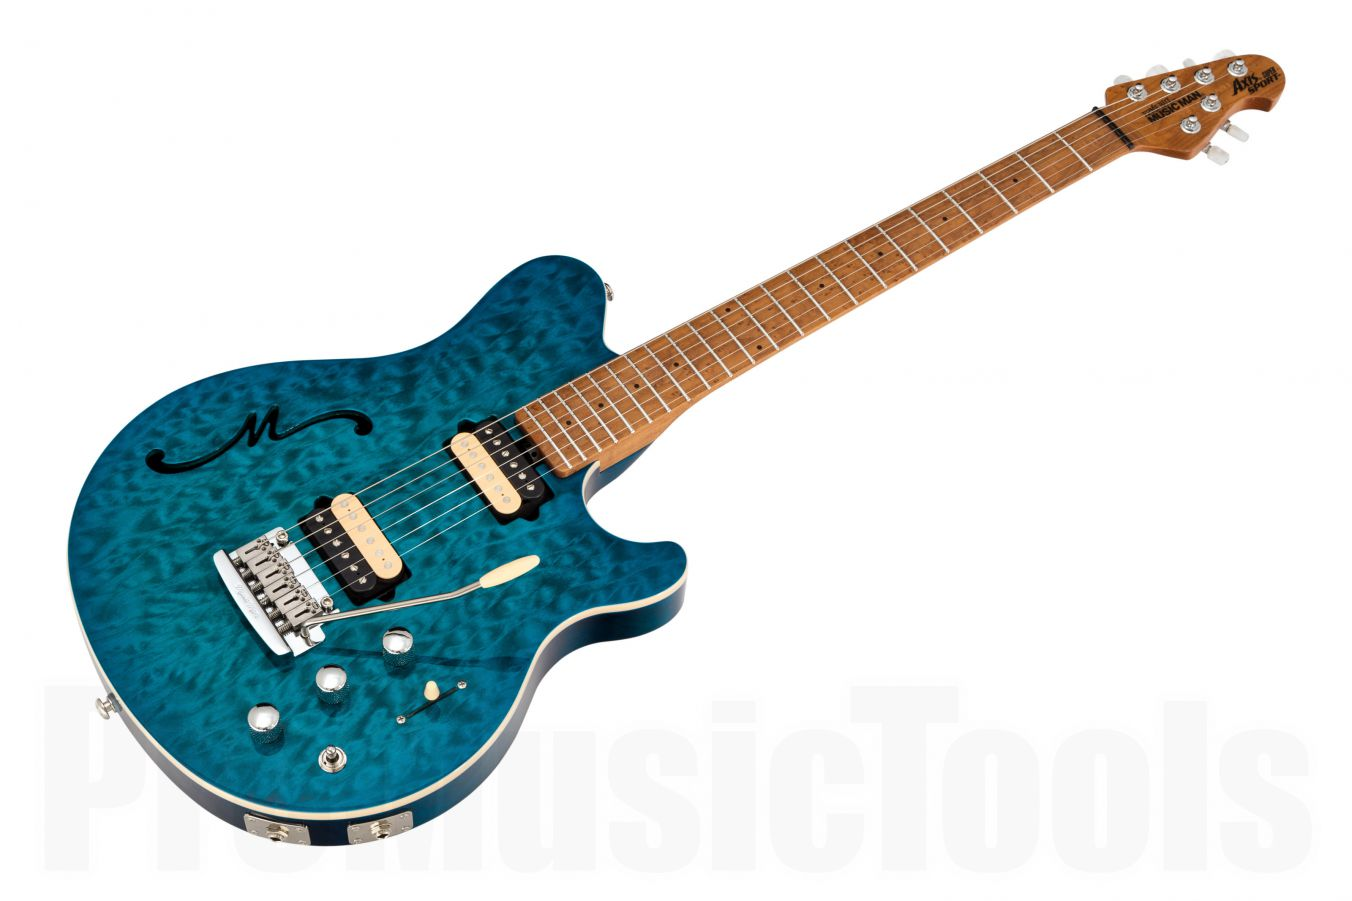 Music Man USA Axis Super Sport Semi-Hollow Body Trem Piezo NB - PDN Neptune Blue Roasted Neck Limited Edition MN